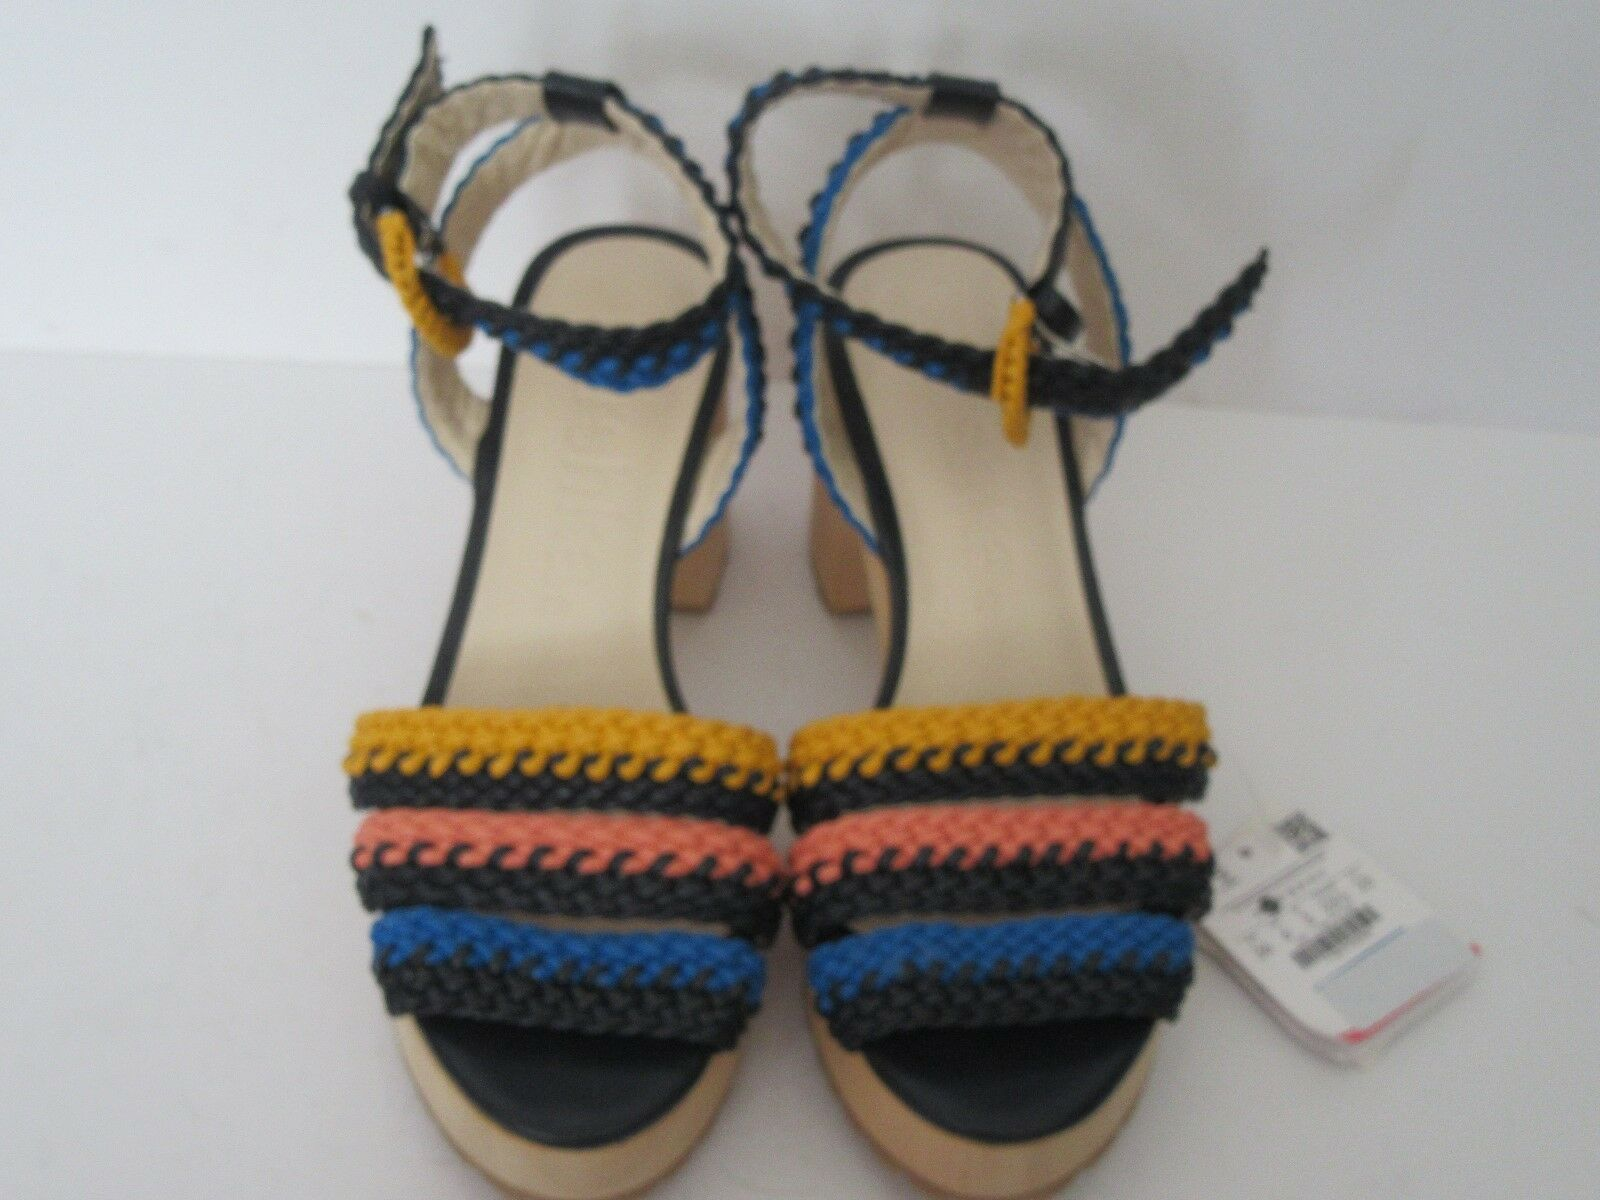 BERSHKA LADIES MULTI COLOUrouge WOVEN STRAPY PEEP TOE SANDAL Taille 3 ANKLESTRAP NEW